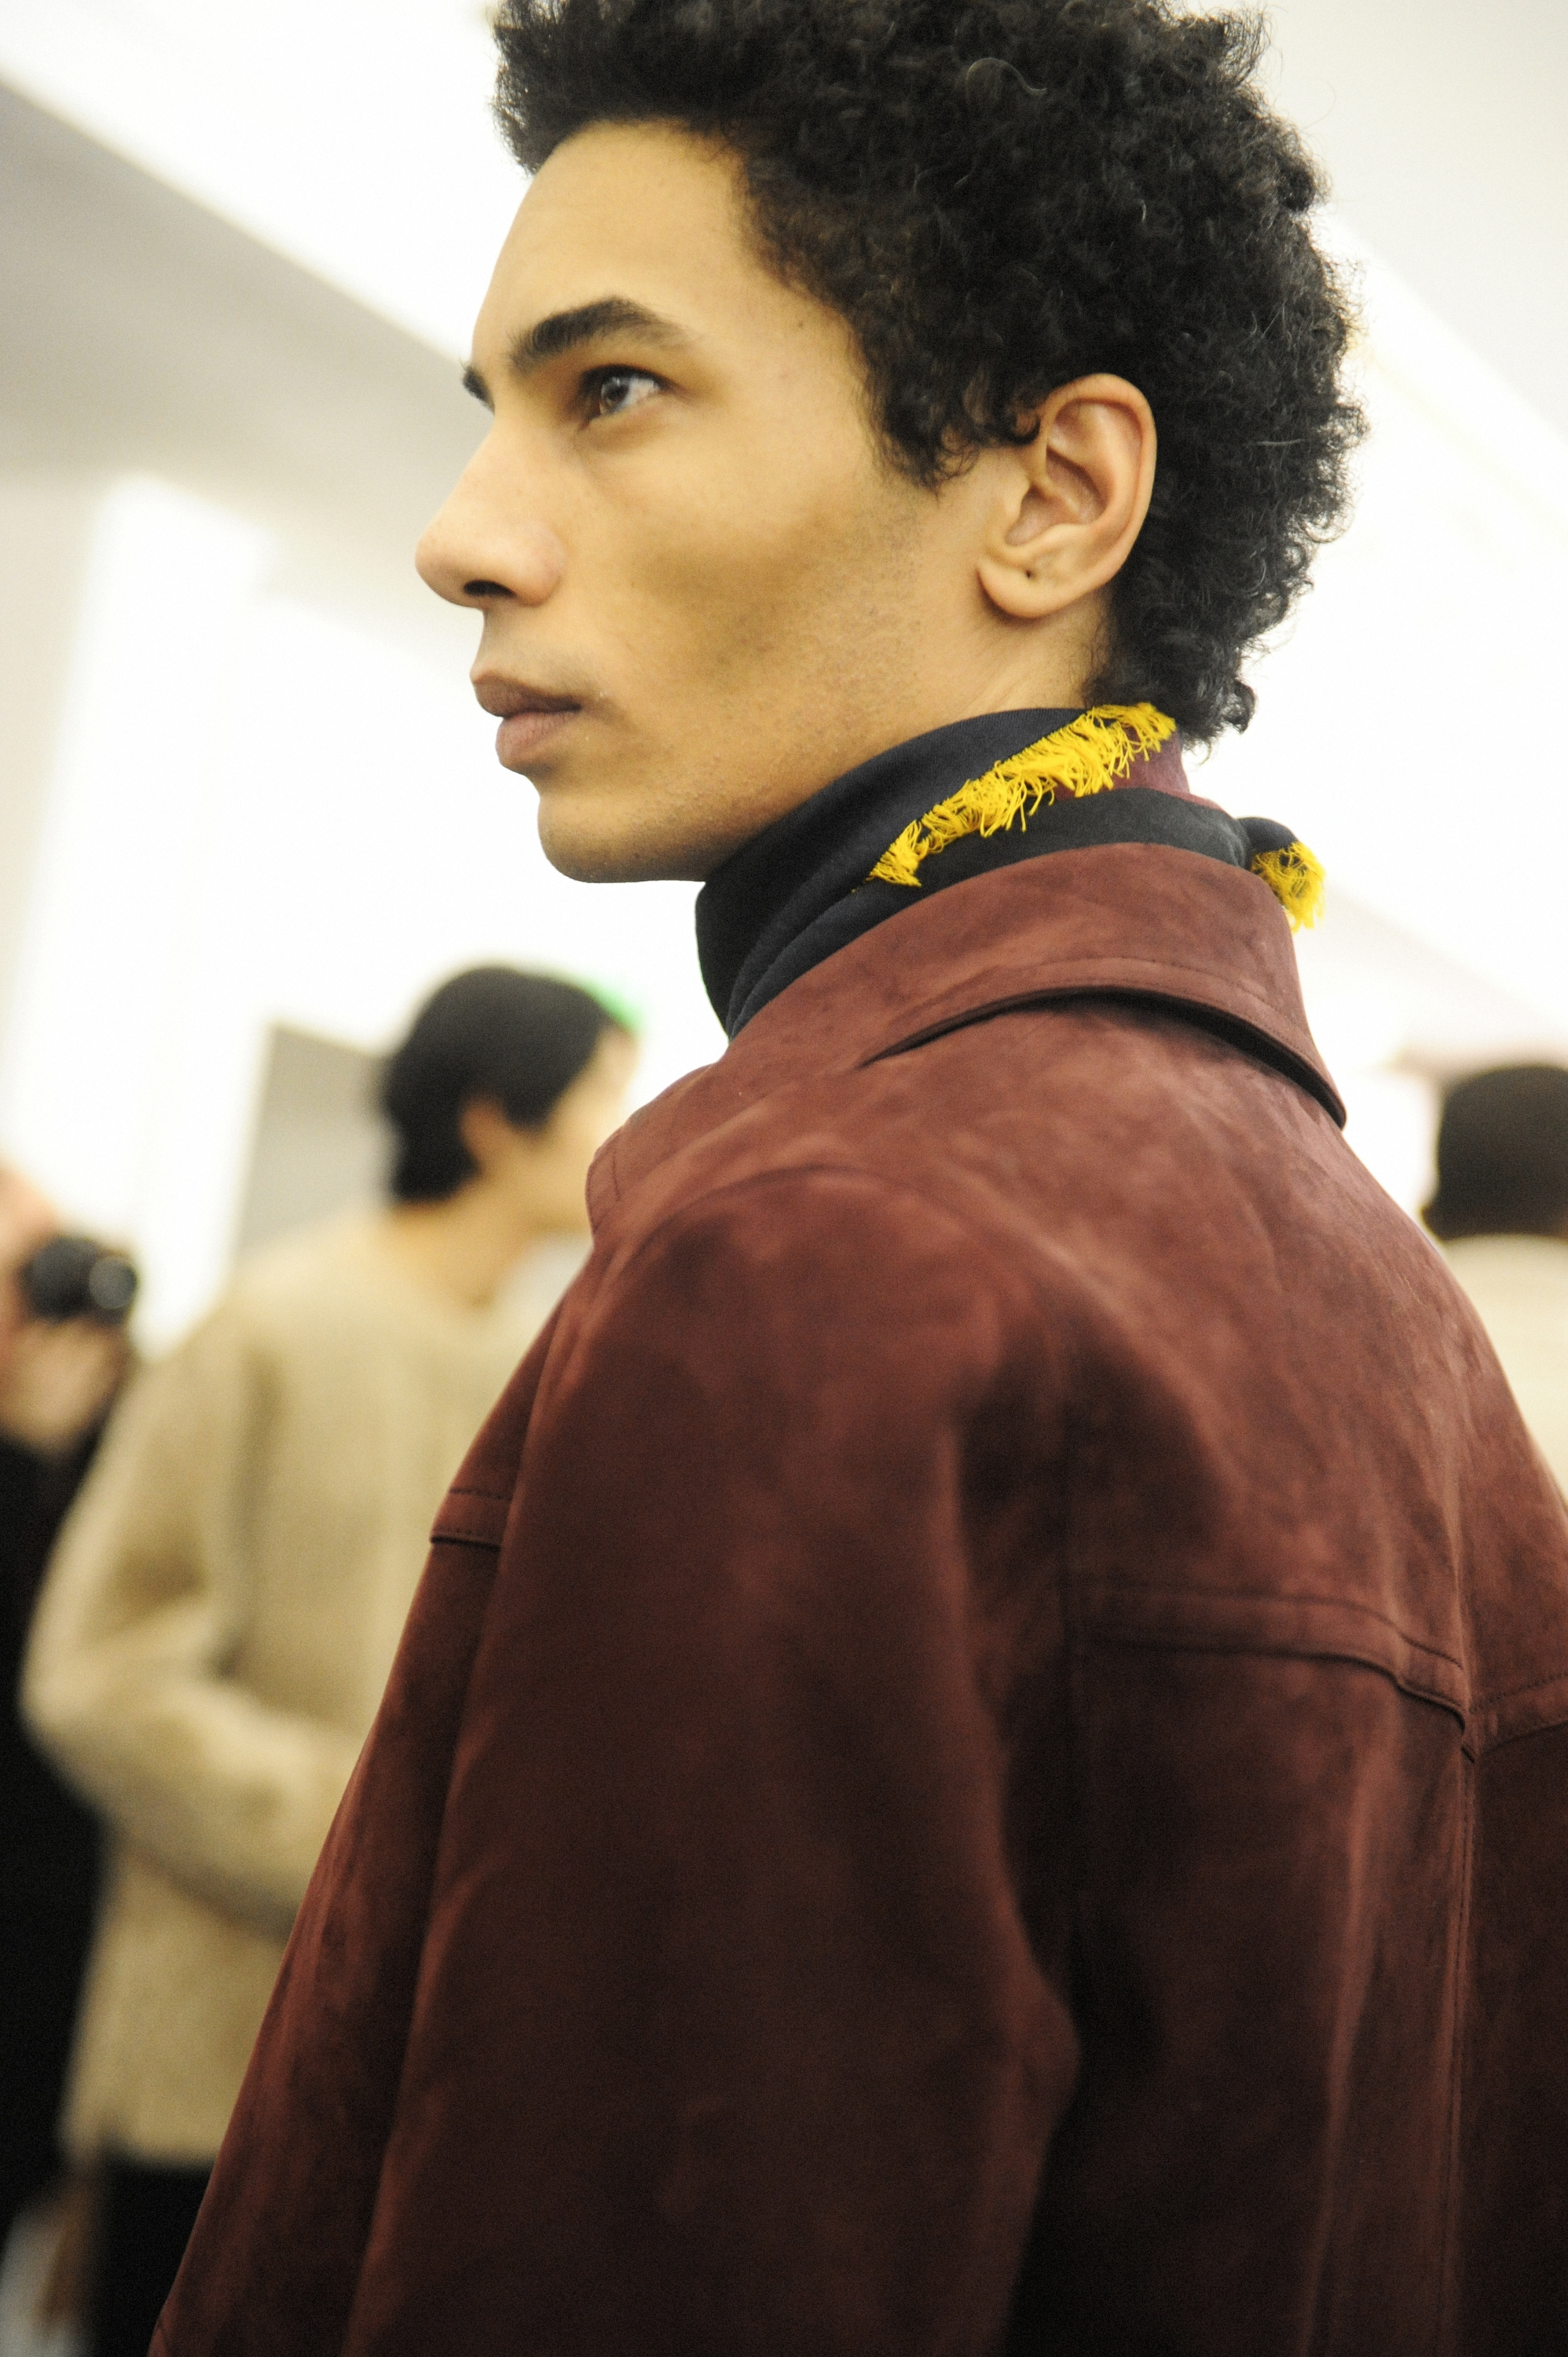 936717d671 BACKSTAGE AT HERMES MENSWEAR FALL WINTER 2017/18 COLLECTION PARIS